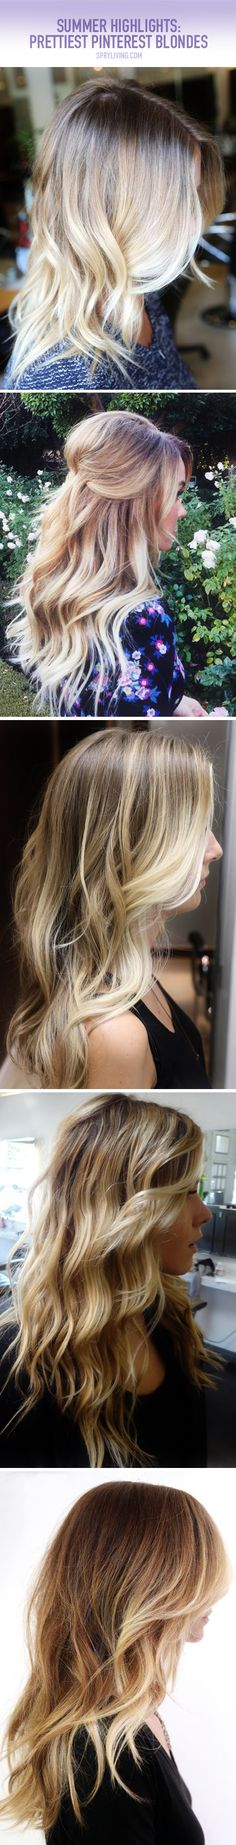 There's nothing prettier than sporting gorgeous sun-kissed hair in the summertime. Here are the most gorgeous blonde highlights on Pinterest! // spryliving.com